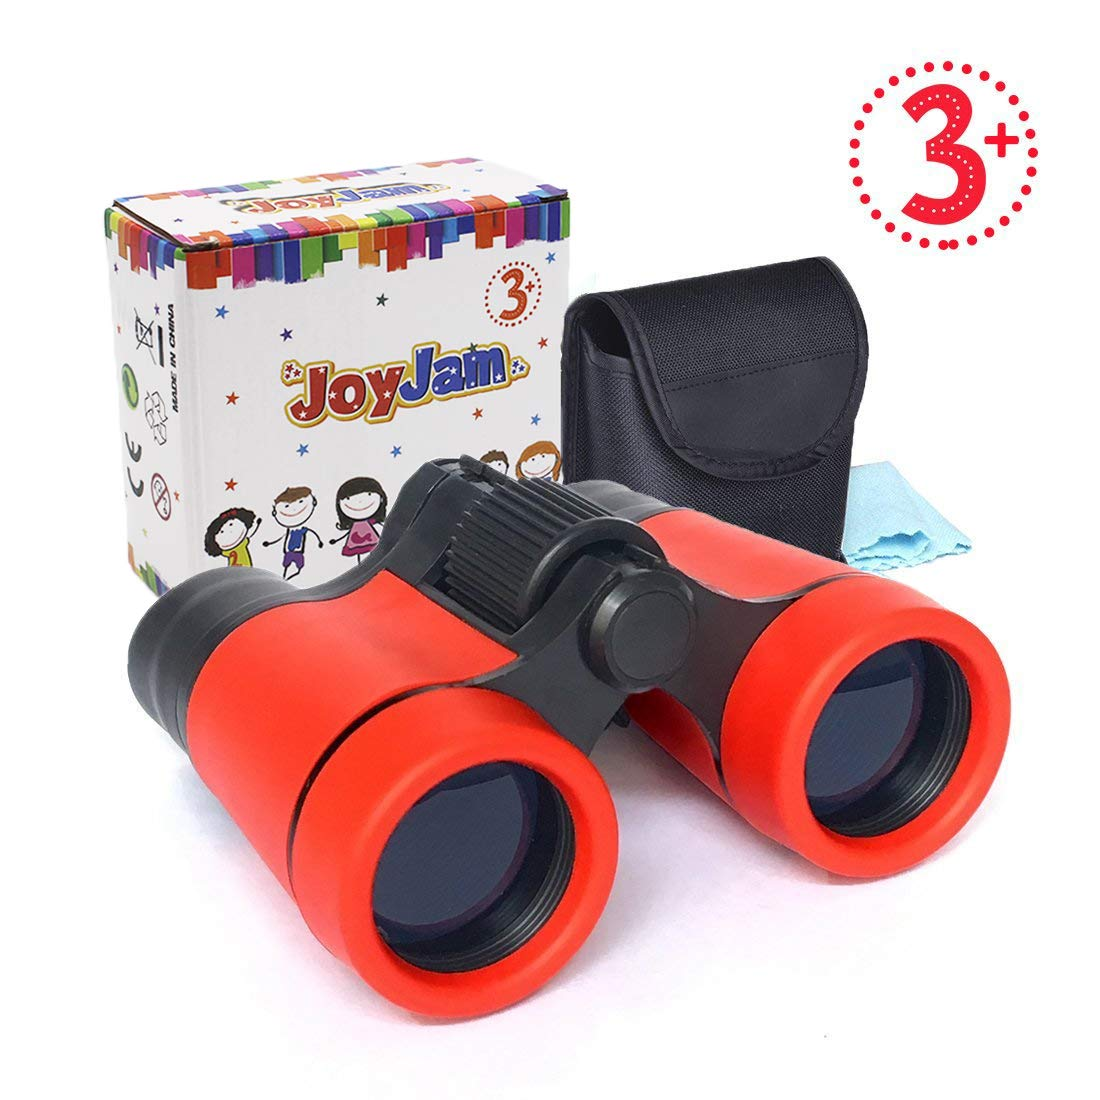 Toys for 3-5 Year Old Boys, JoyJam Shock Proof Kids Binoculars Boys Telescope for Bird Watching, Hunting and Hiking. Best Gifts (Blue)